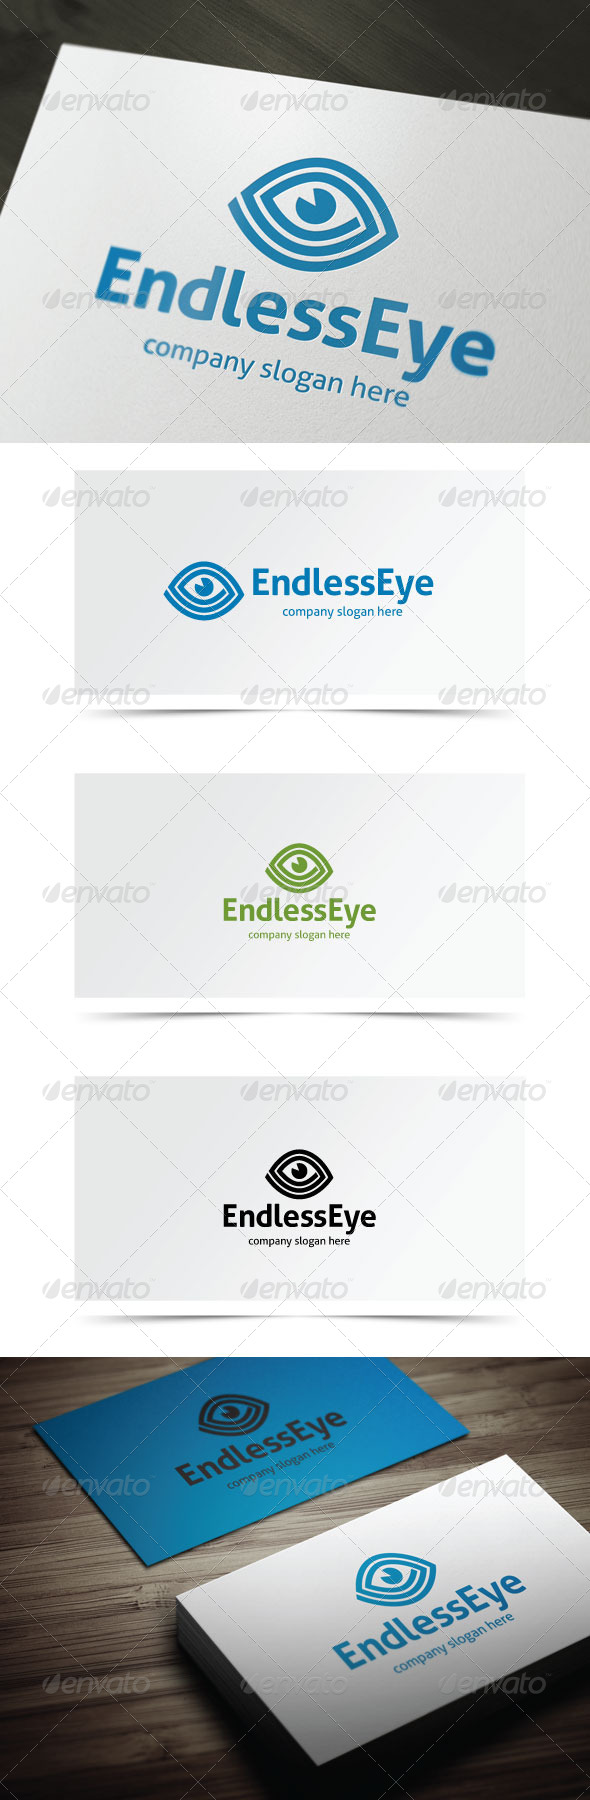 GraphicRiver Endless Eye 6782665